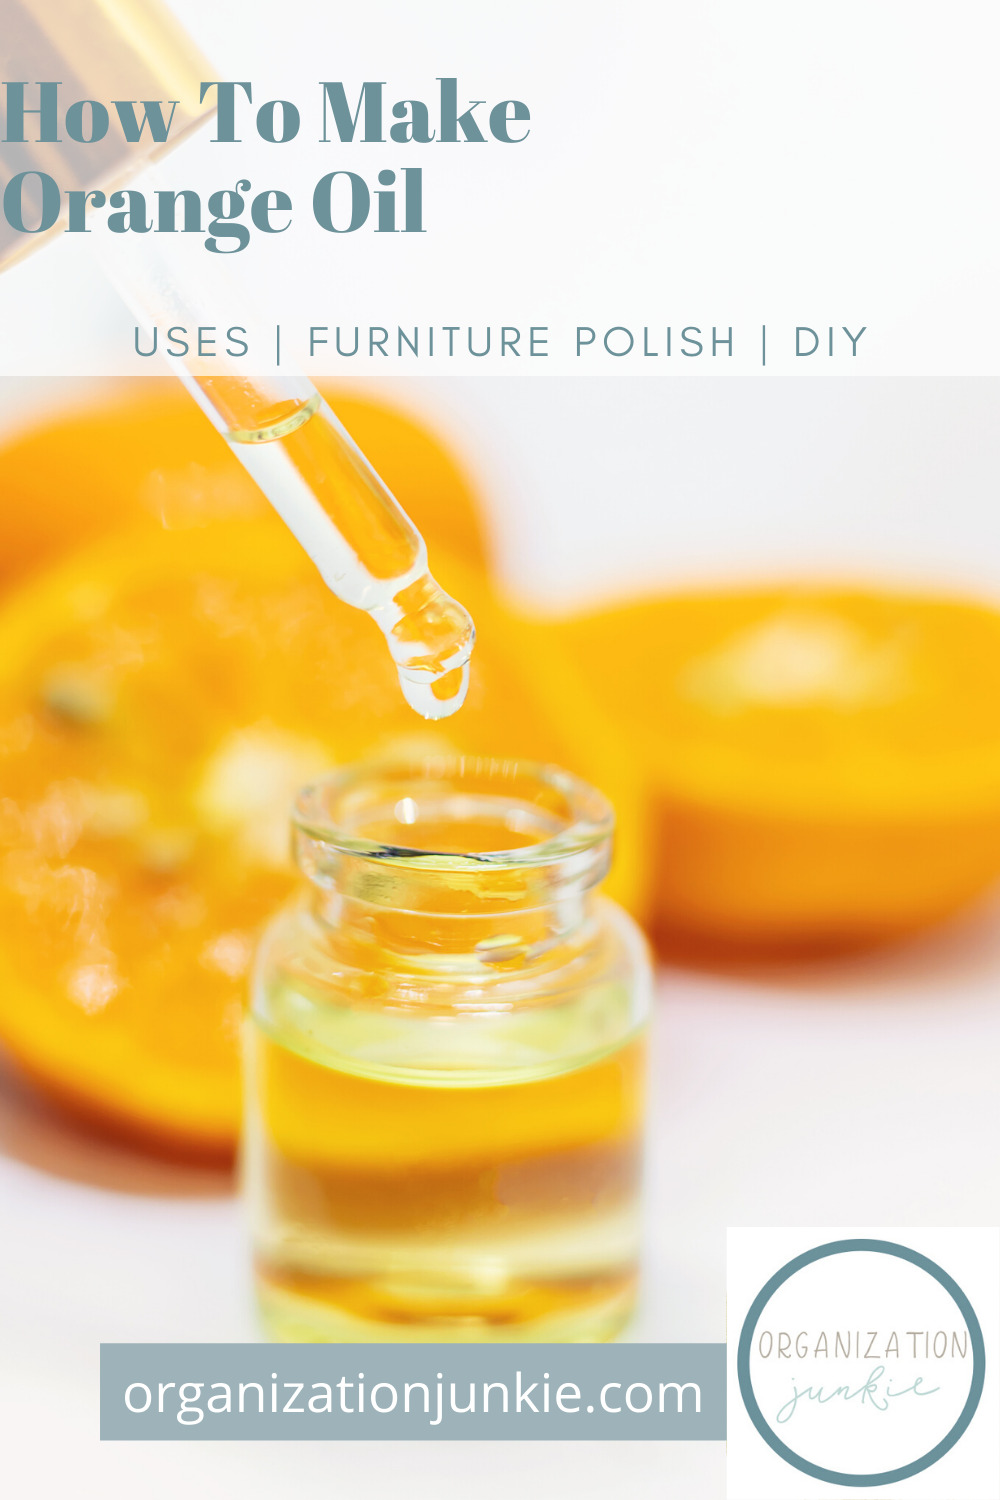 Oranges are probably the most fragrant fruit and the orange oil is full of that fragrance. Make a DIY orange oil cleaner that will clean more things than you can imagine! #diyorangeoil #diycleaner #organizationjunkieblog